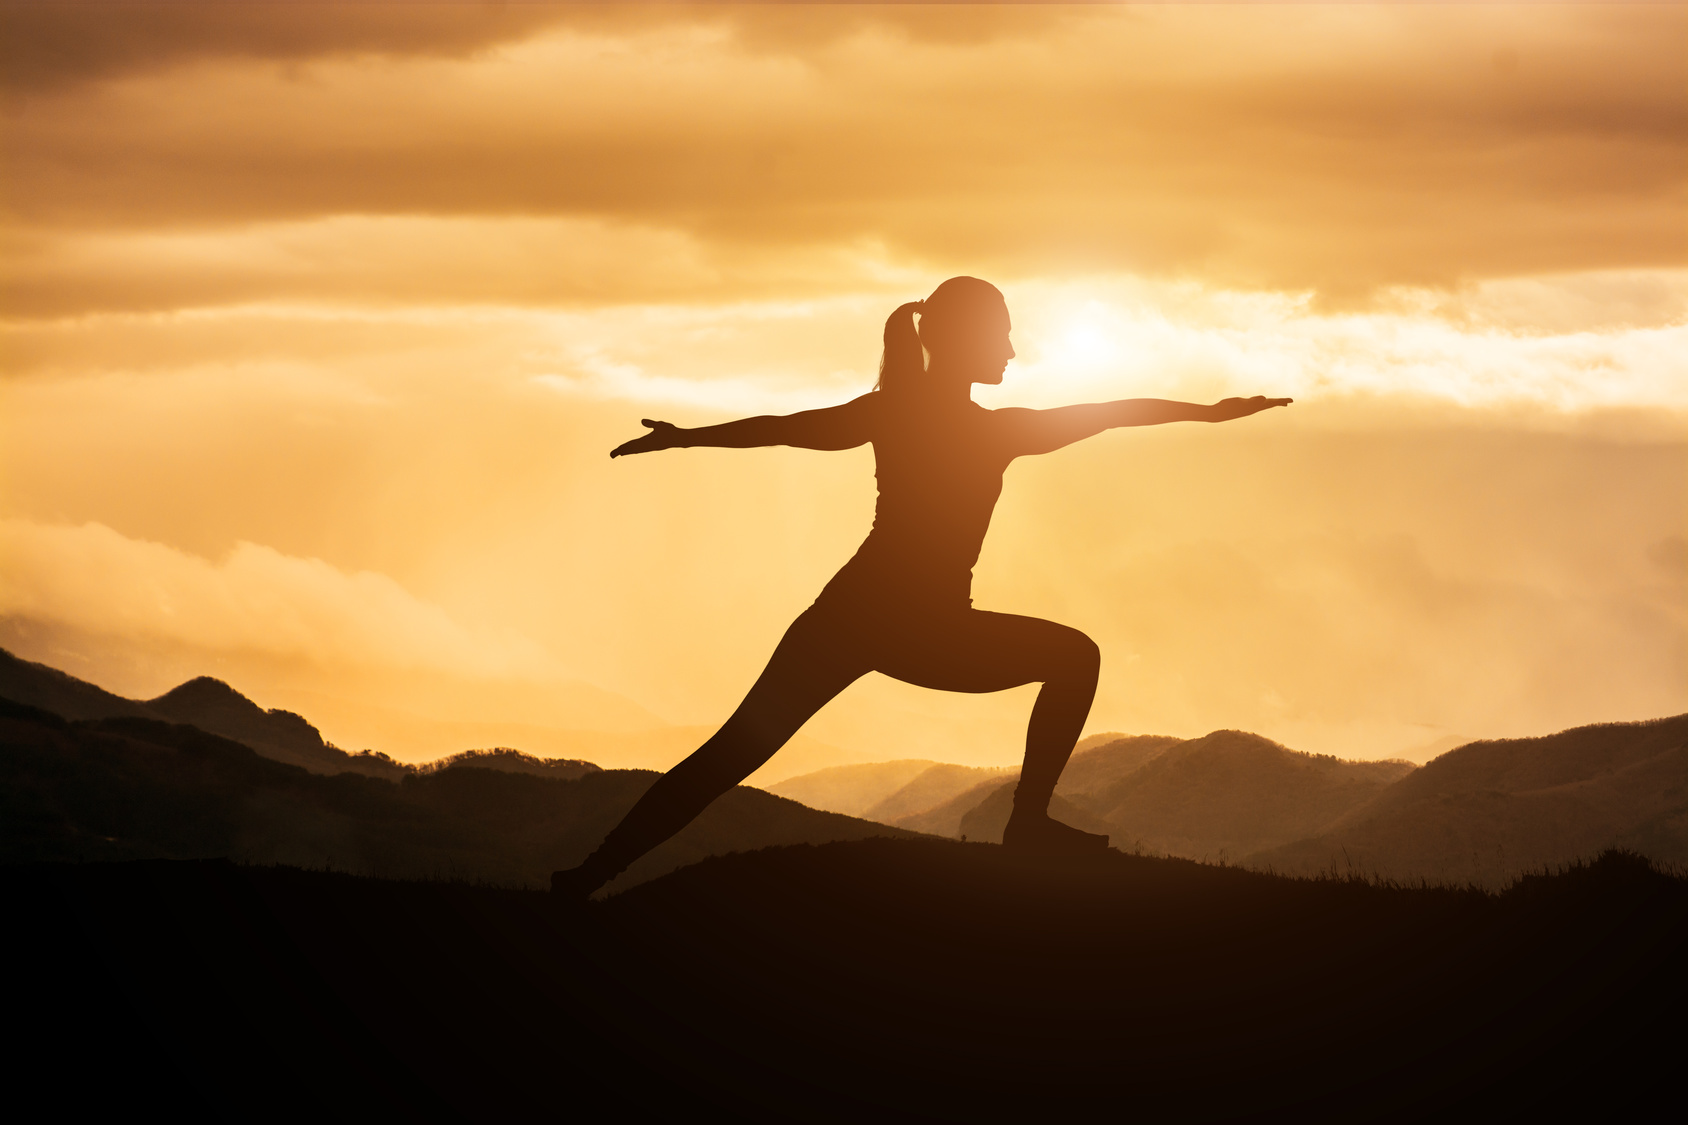 Rheuma Optimist, Fruehjahrsputz - spring cleaning, Woman Doing Yoga at Sunset, Foto-Copyright: Fotolia/Sondem